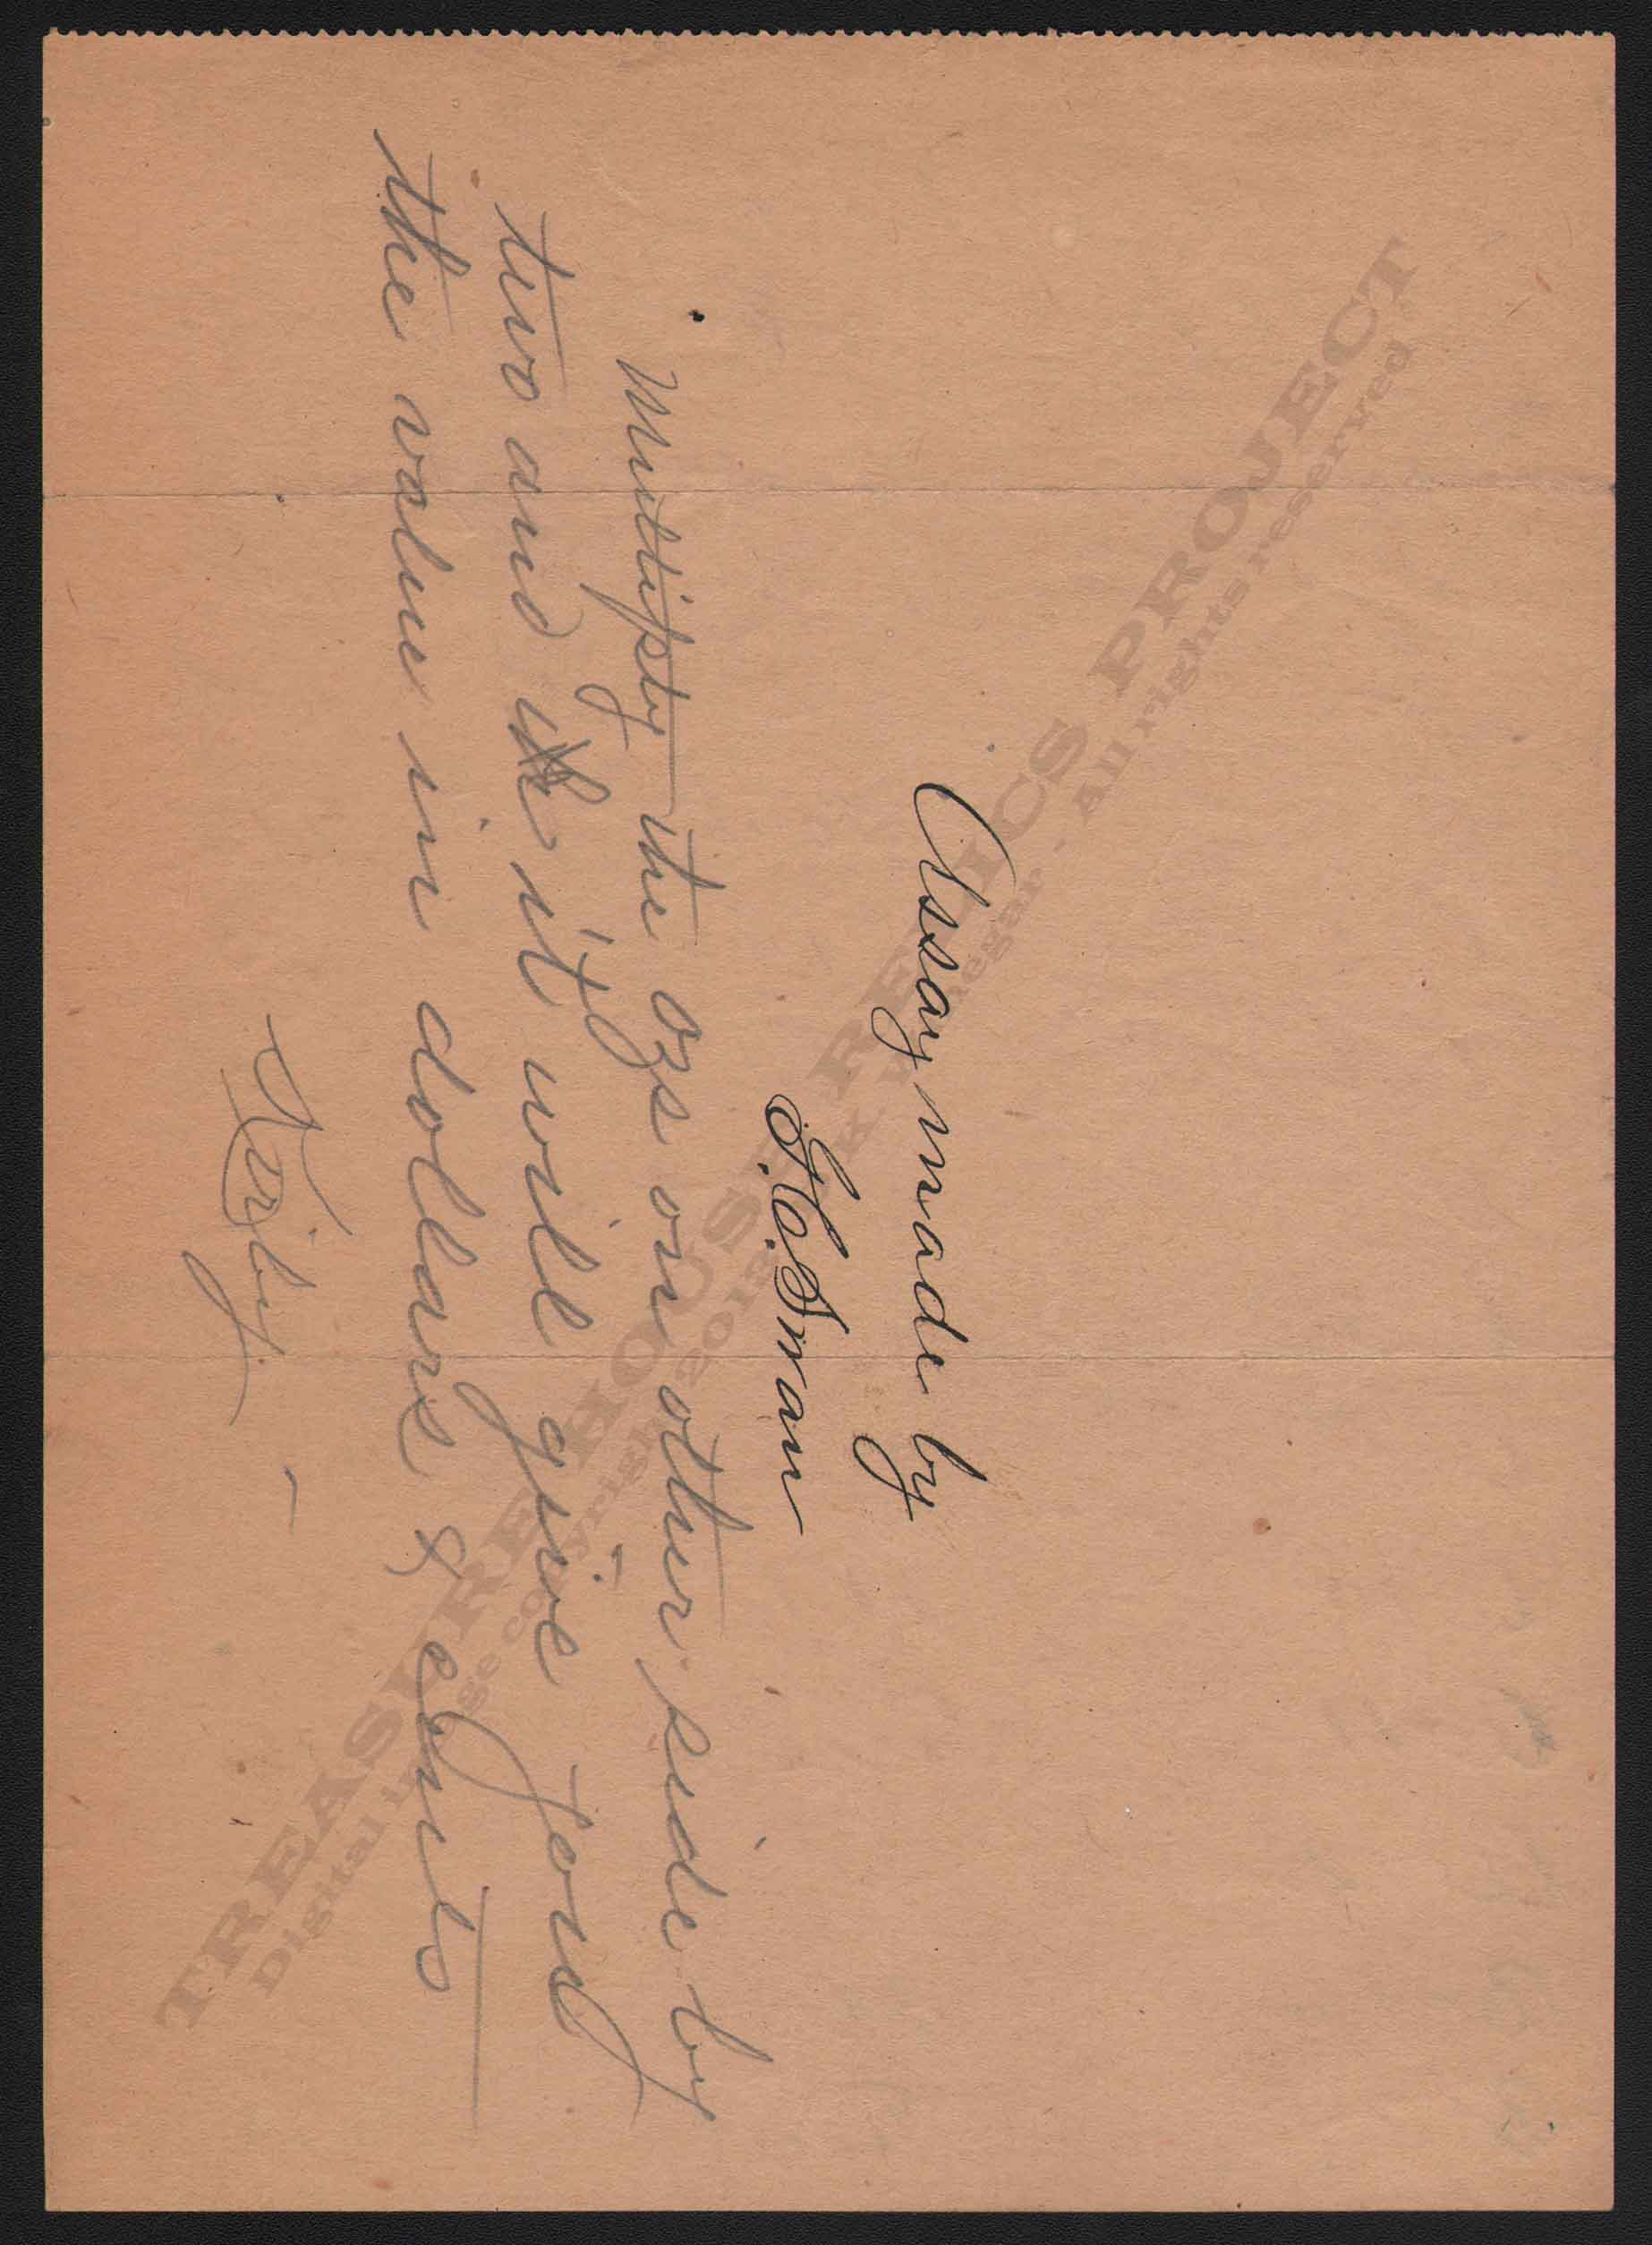 LETTERHEAD/ASSAY_UTAH_ORE_SAMPLING_OLSEN_LOWRY_1912_1_18_300_CROP_EMBOSS.jpg